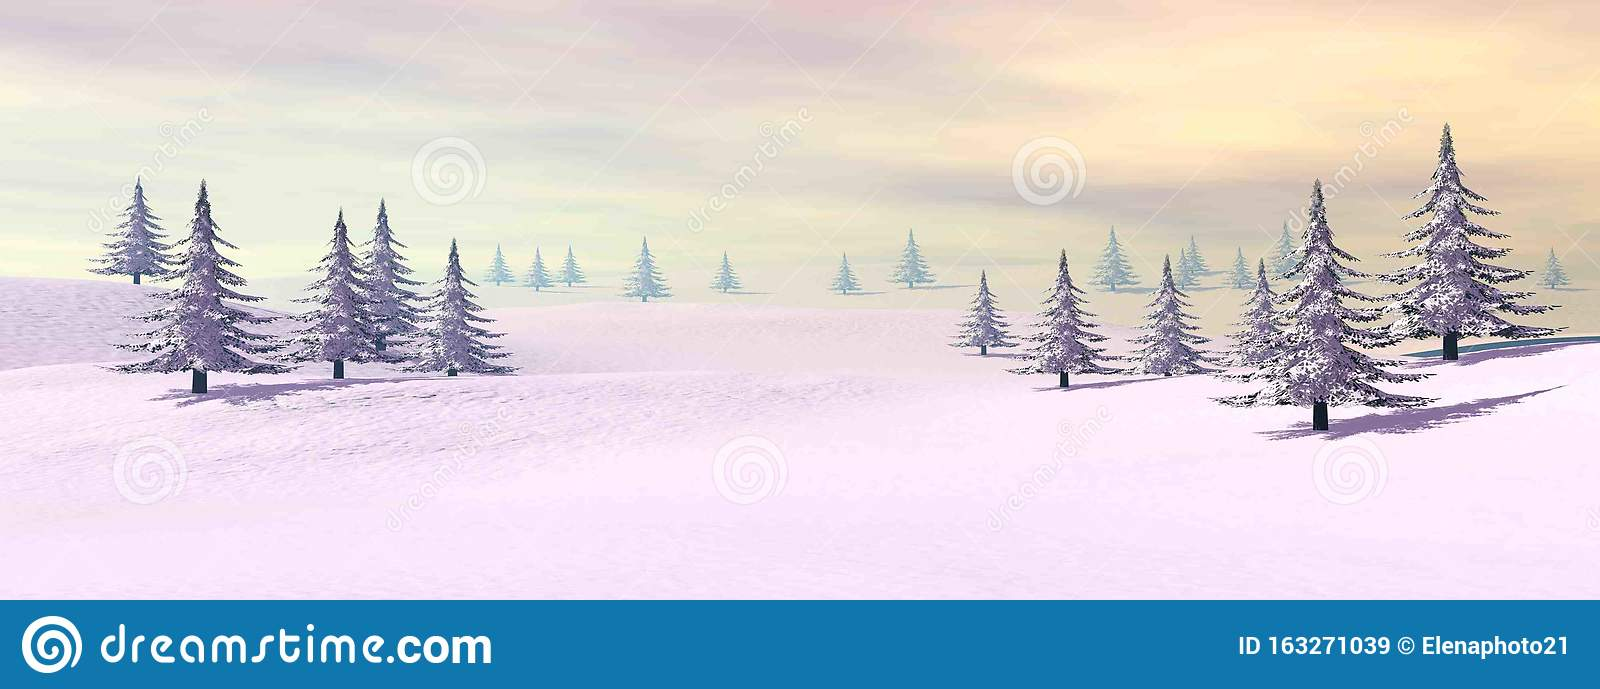 Winter landscape in the mountain - 3D render